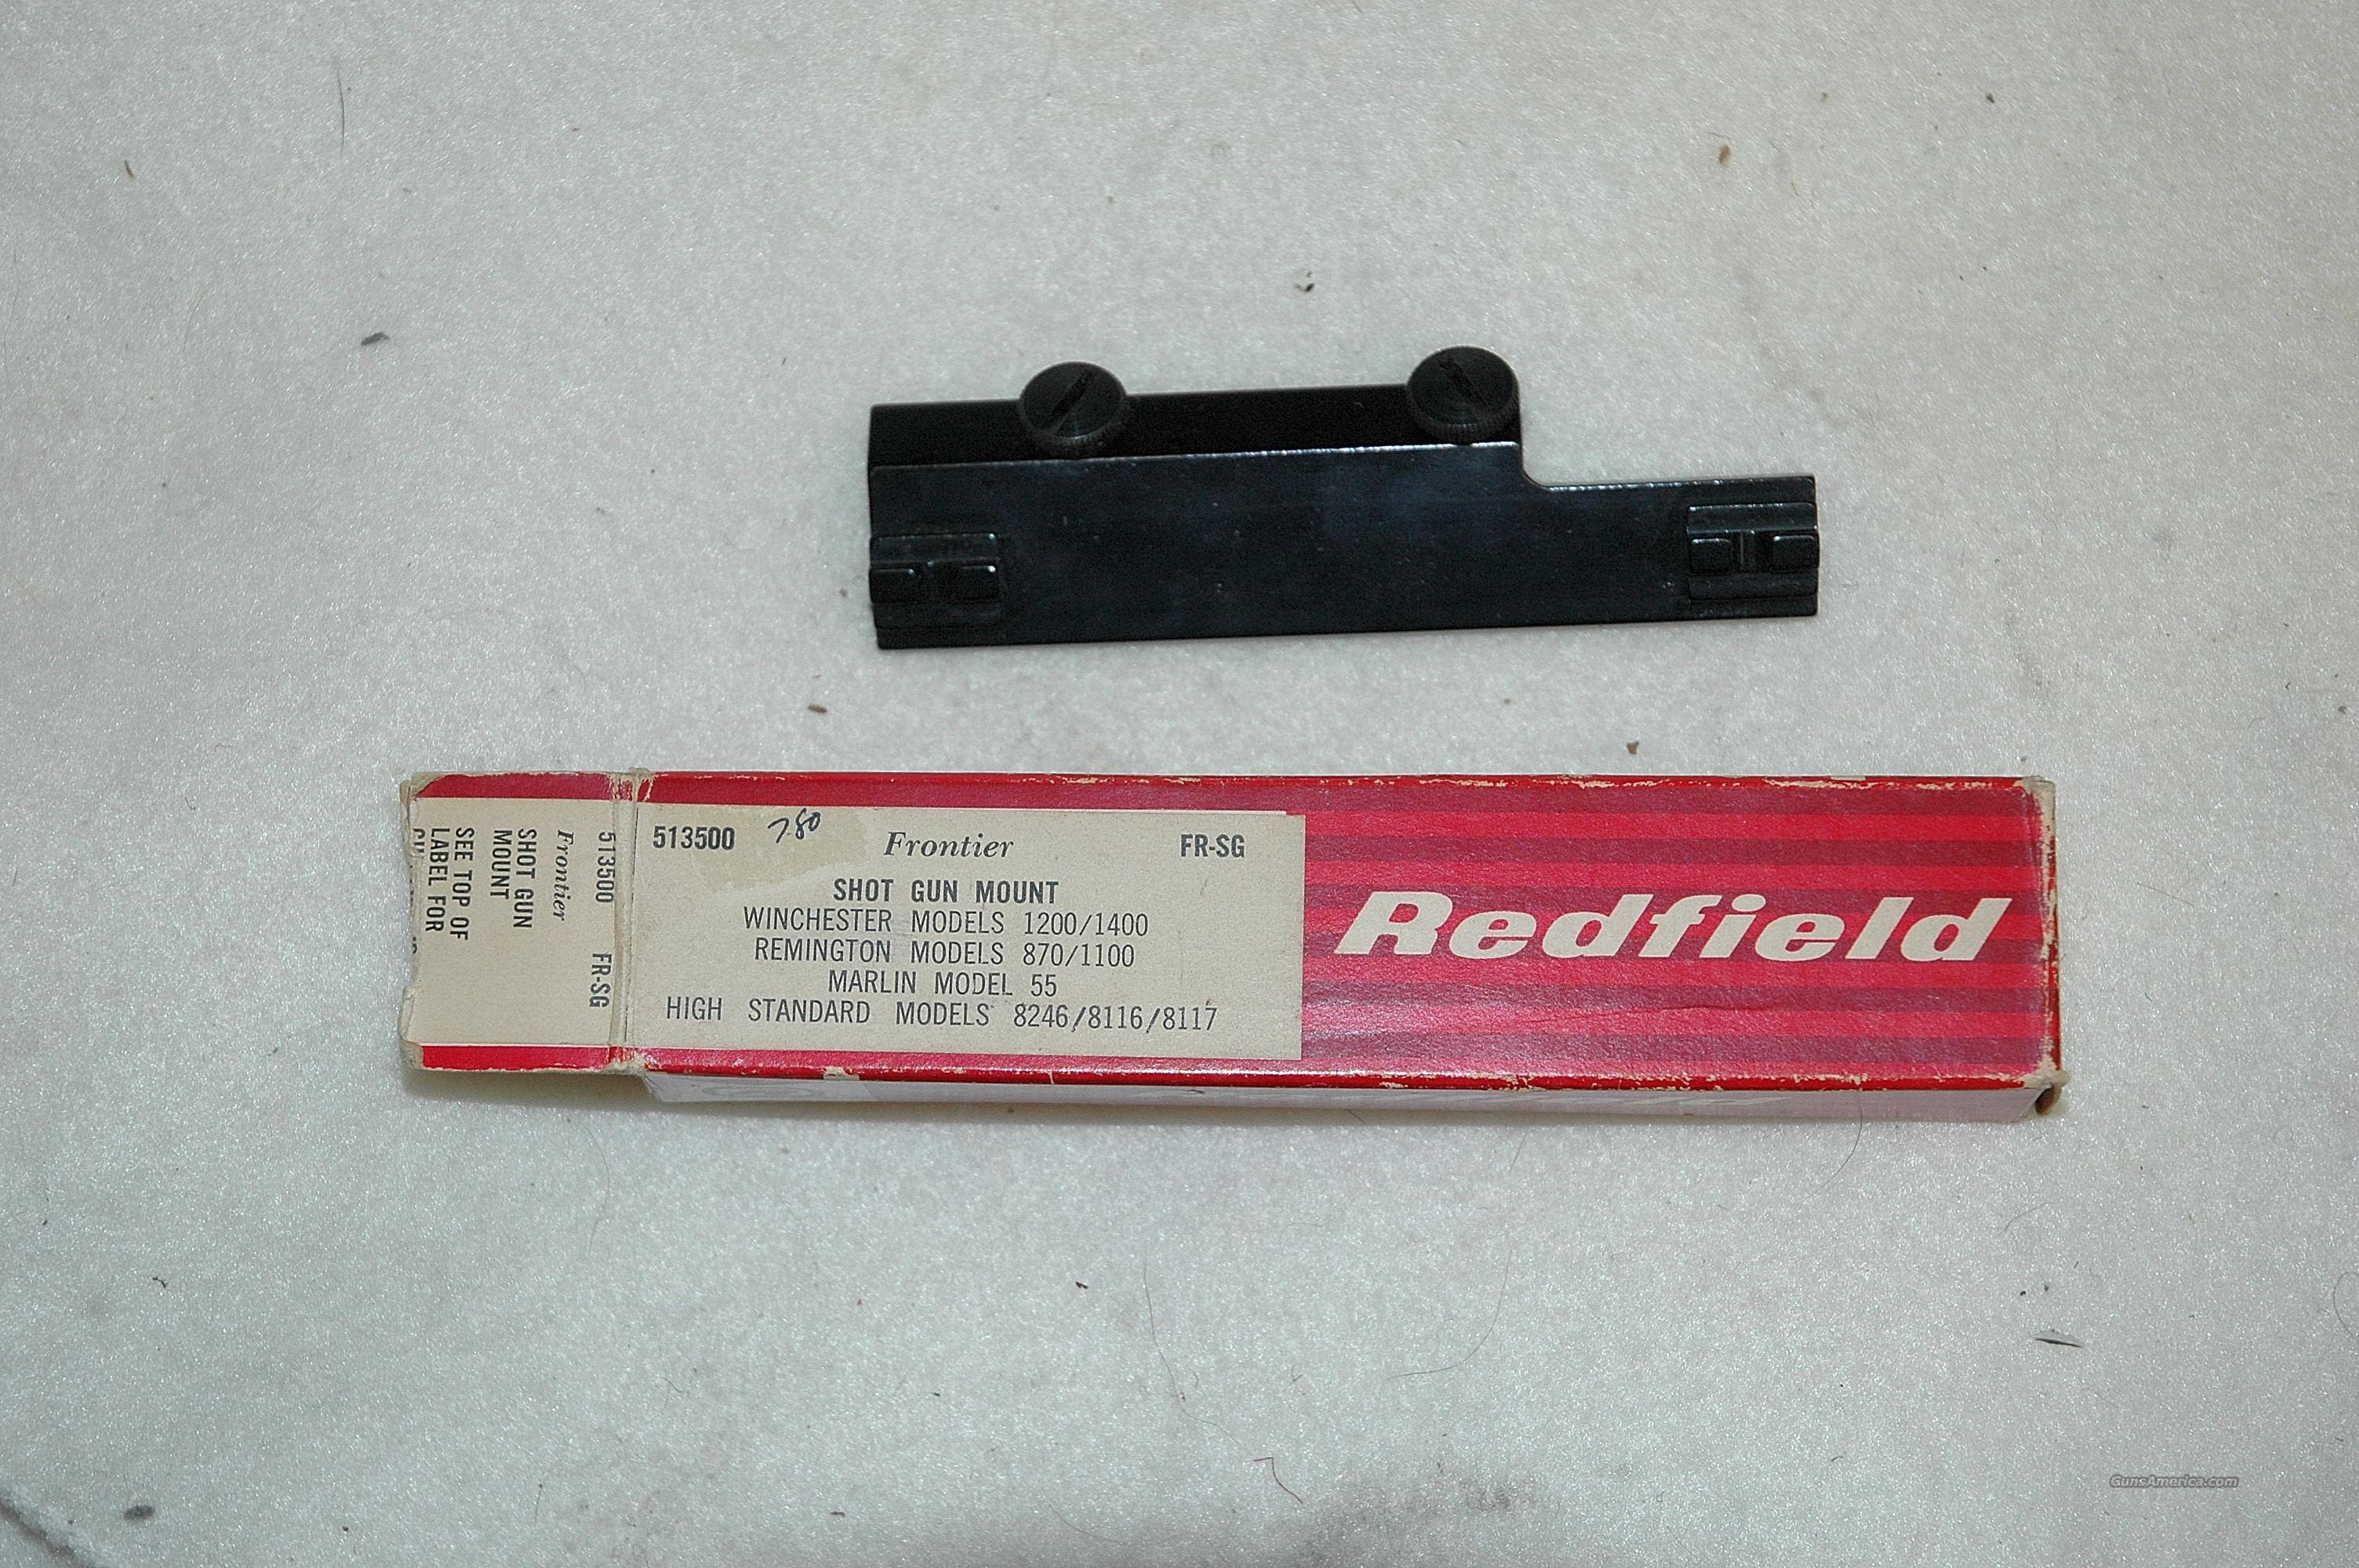 Redfield mount for Multiple Shotguns  Non-Guns > Scopes/Mounts/Rings & Optics > Mounts > Other